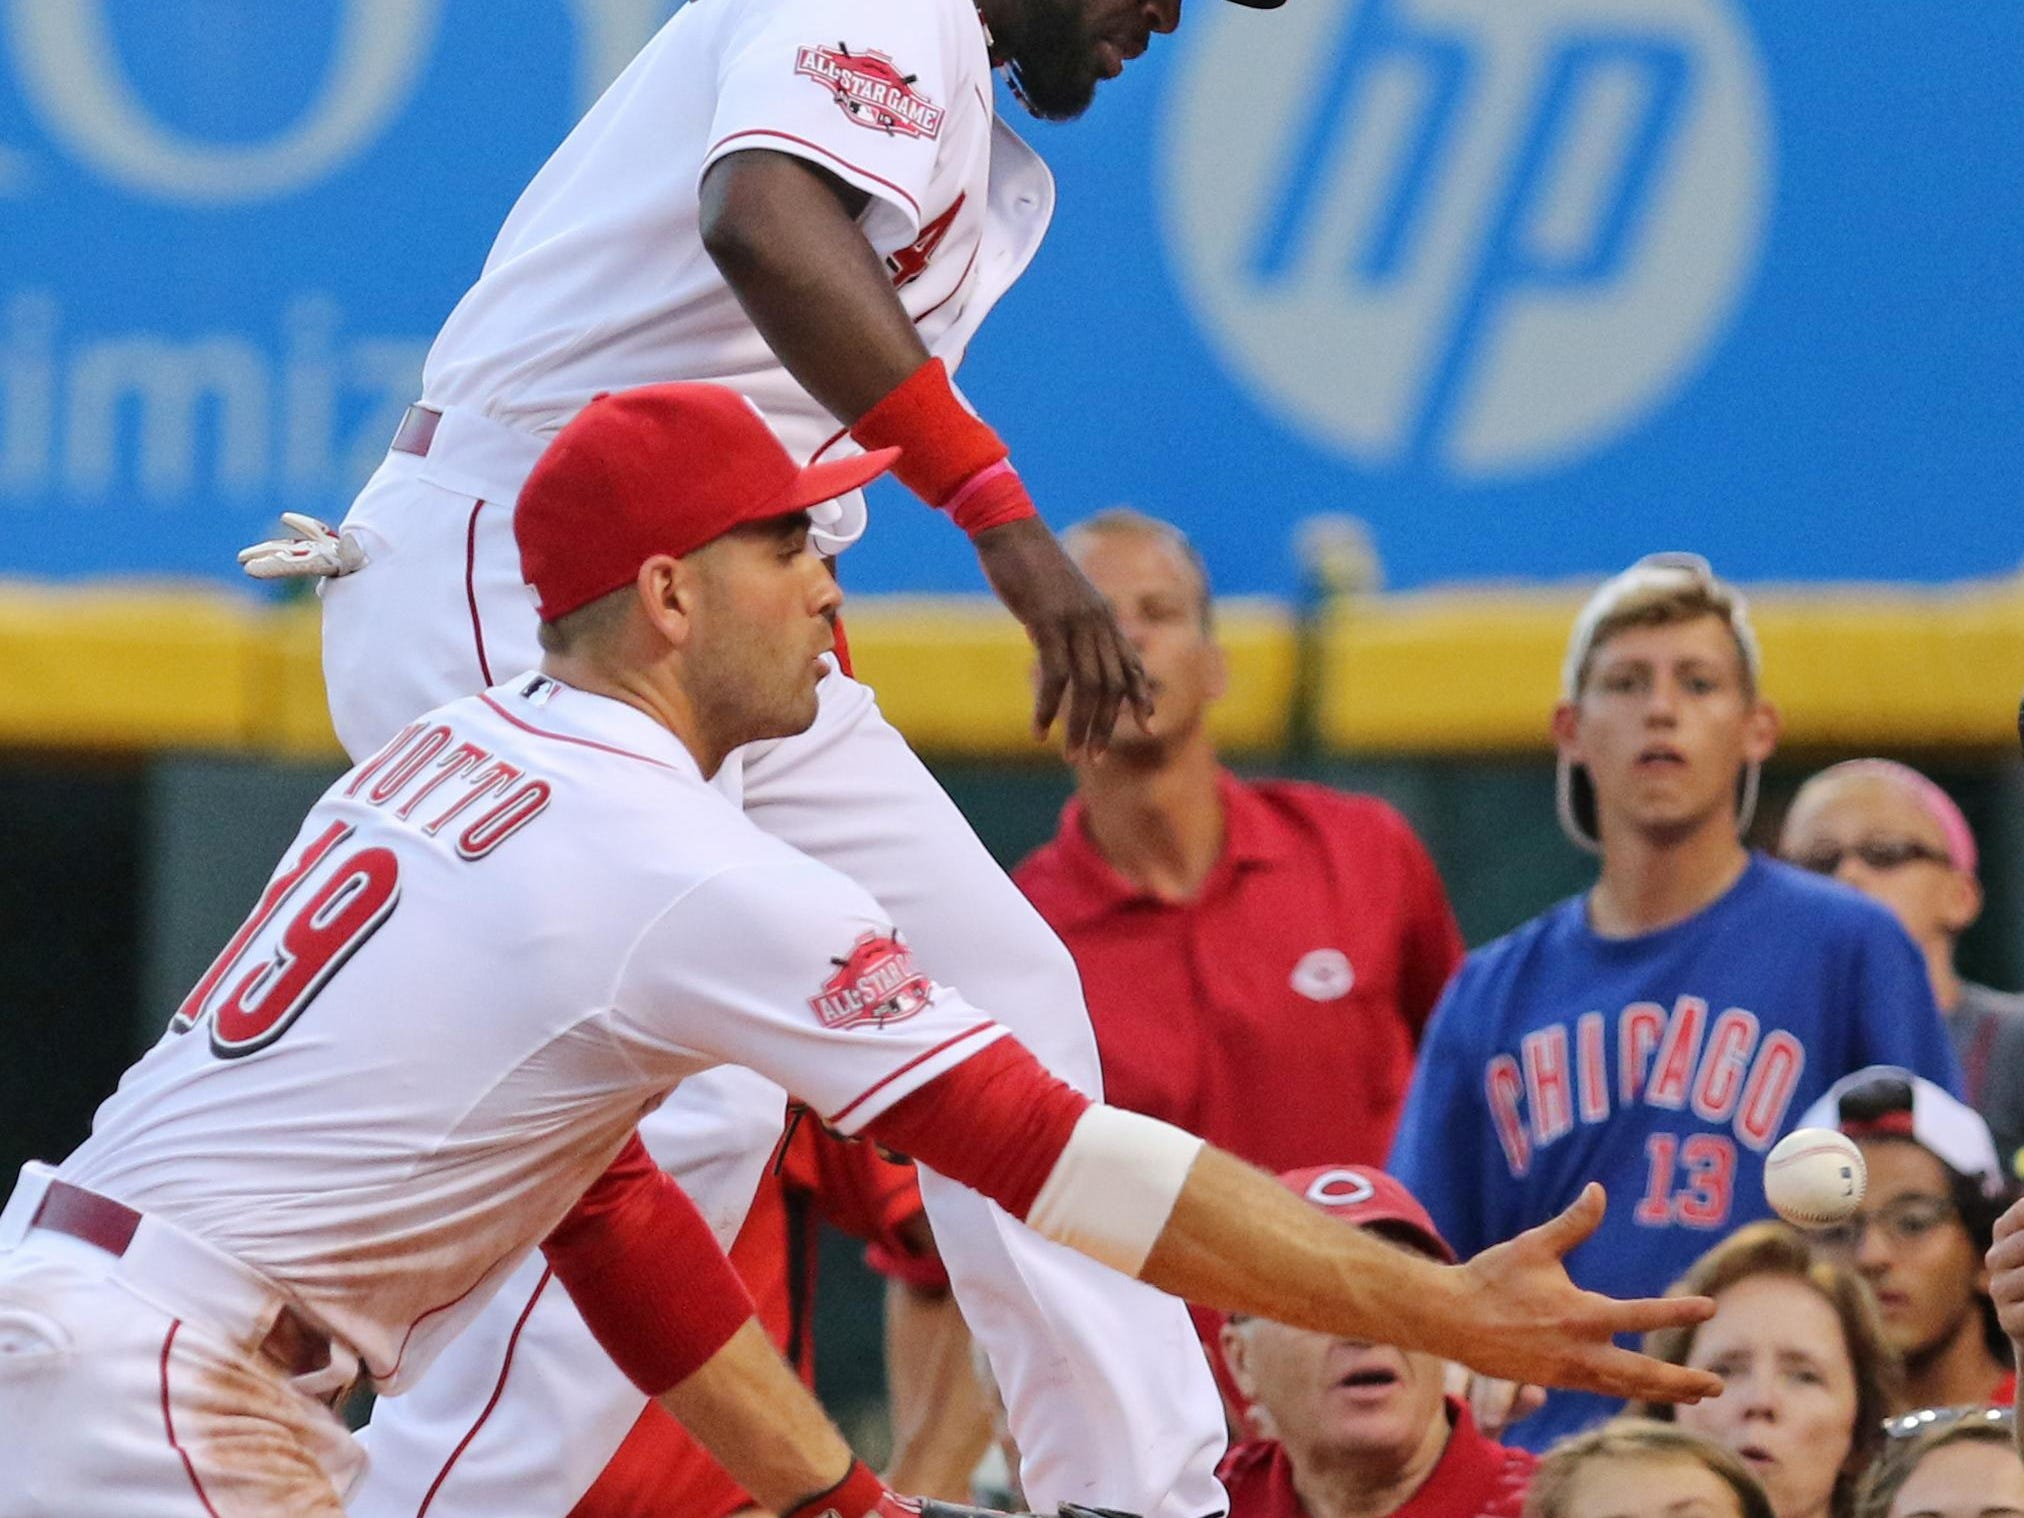 Cincinnati's Brandon Phillips, top, and Joey Votto go to the tarp, but can't come up with a ball hit by Addison Russell.